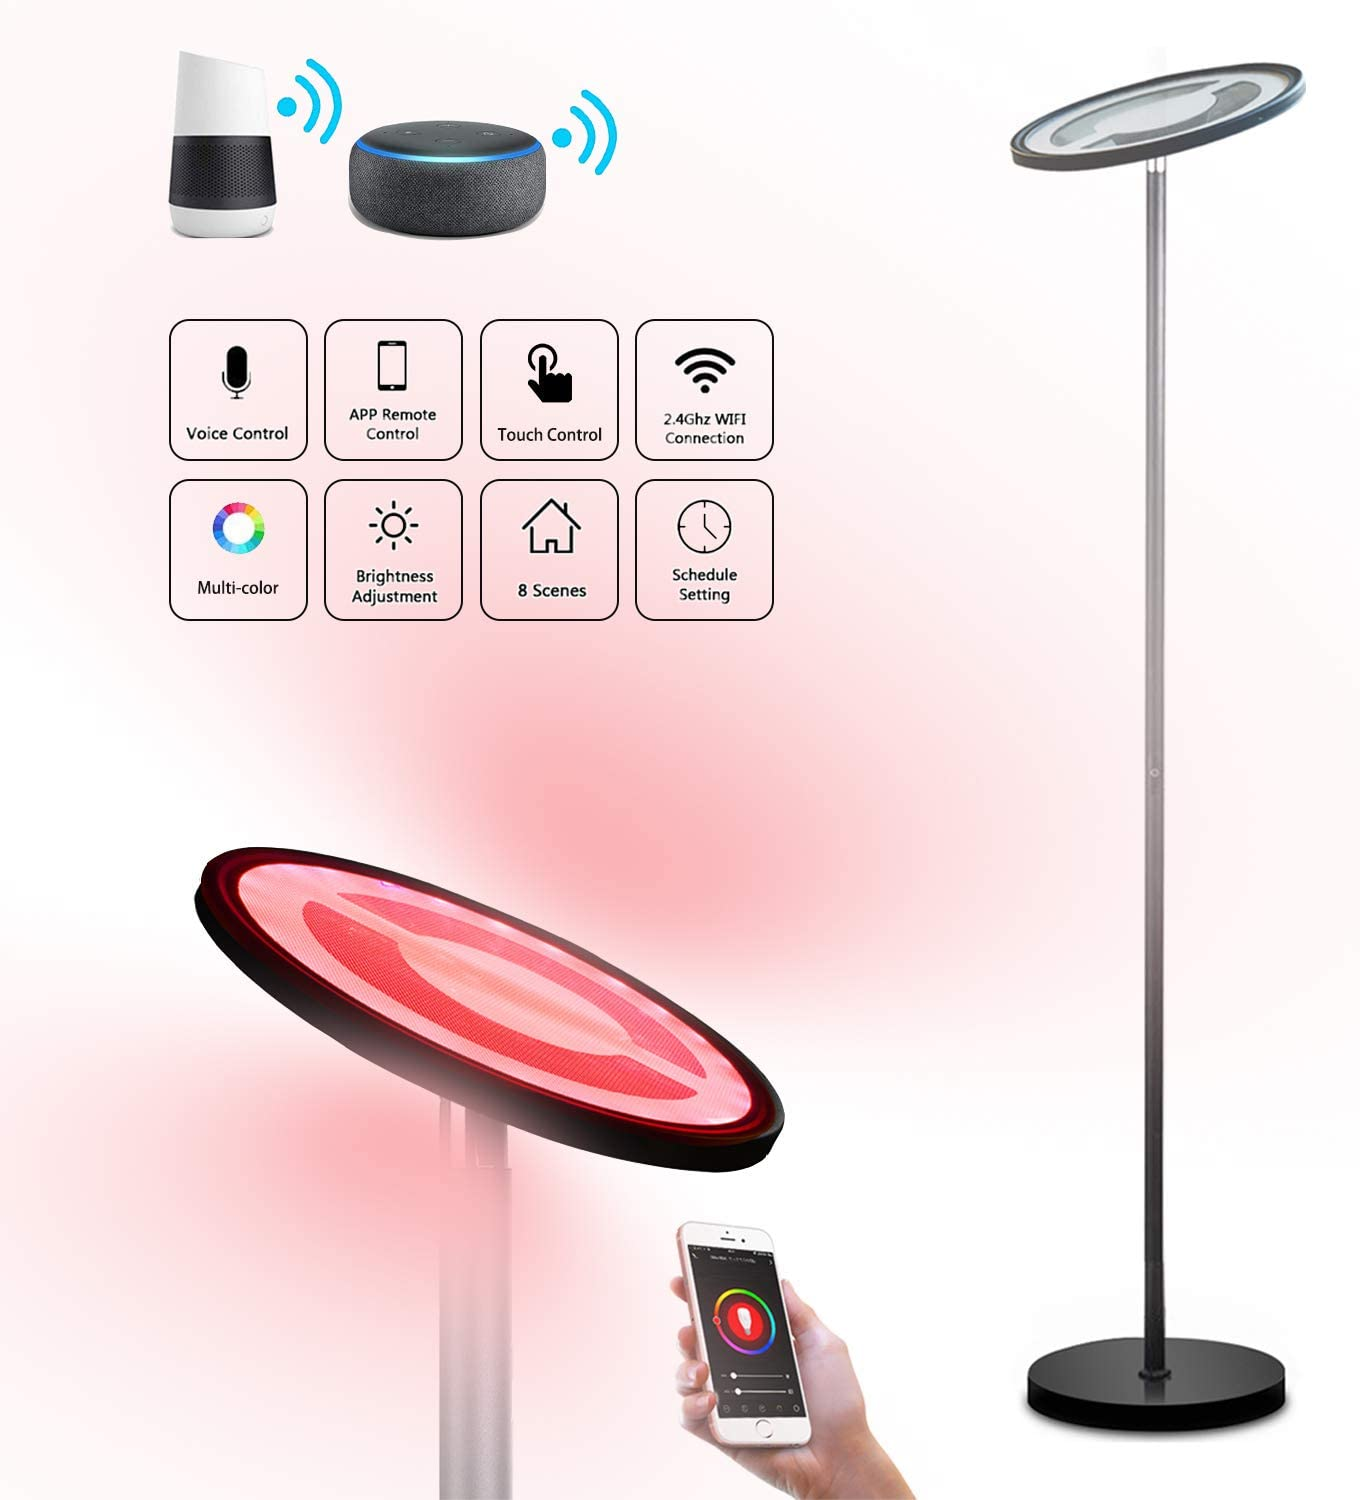 Smart Floor Lamp,BRTLX RGBW Dimmable LED Reading Standing Lamp with Touch/Voice Control, Mutli-color Changing, Compatible with Smart Phone APP Amazon Alexa Google, Ideal for Living Room Bedroom Office